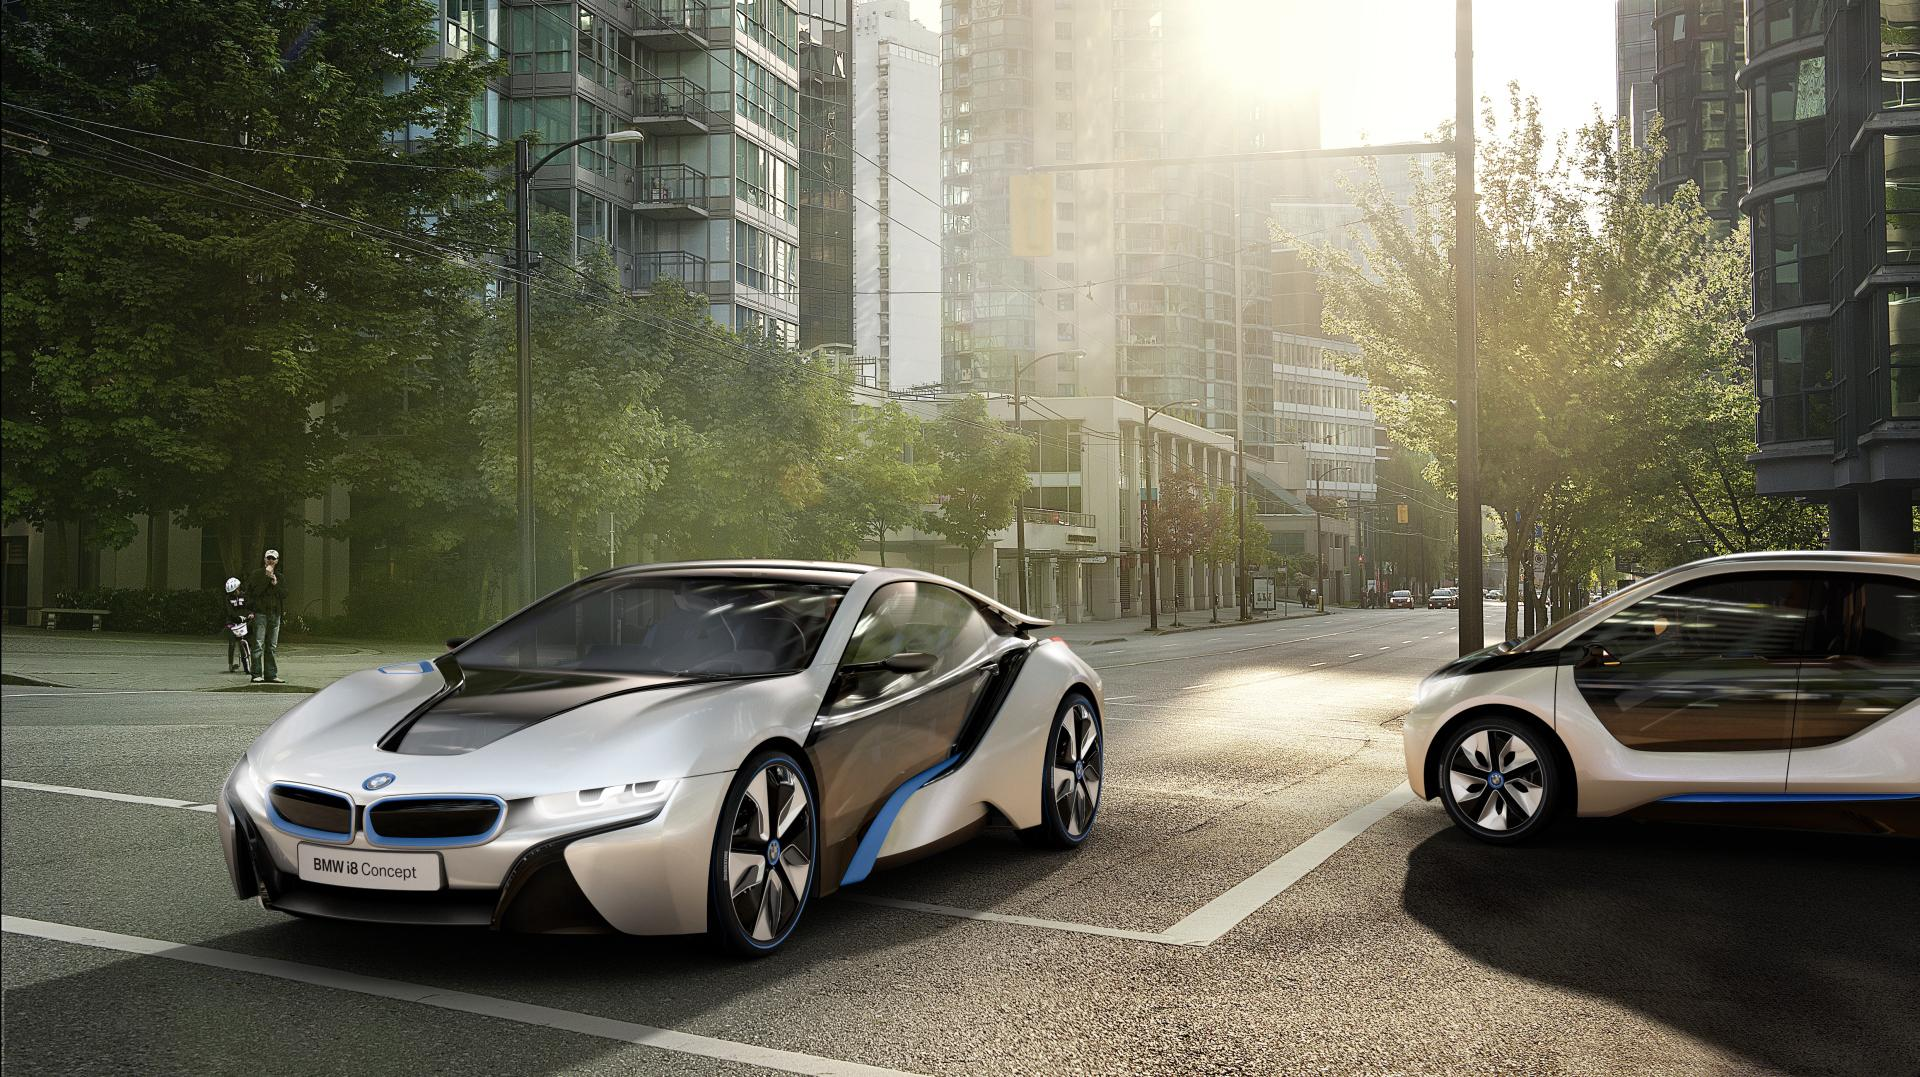 1920x1077 - BMW i3 Concept Wallpapers 4